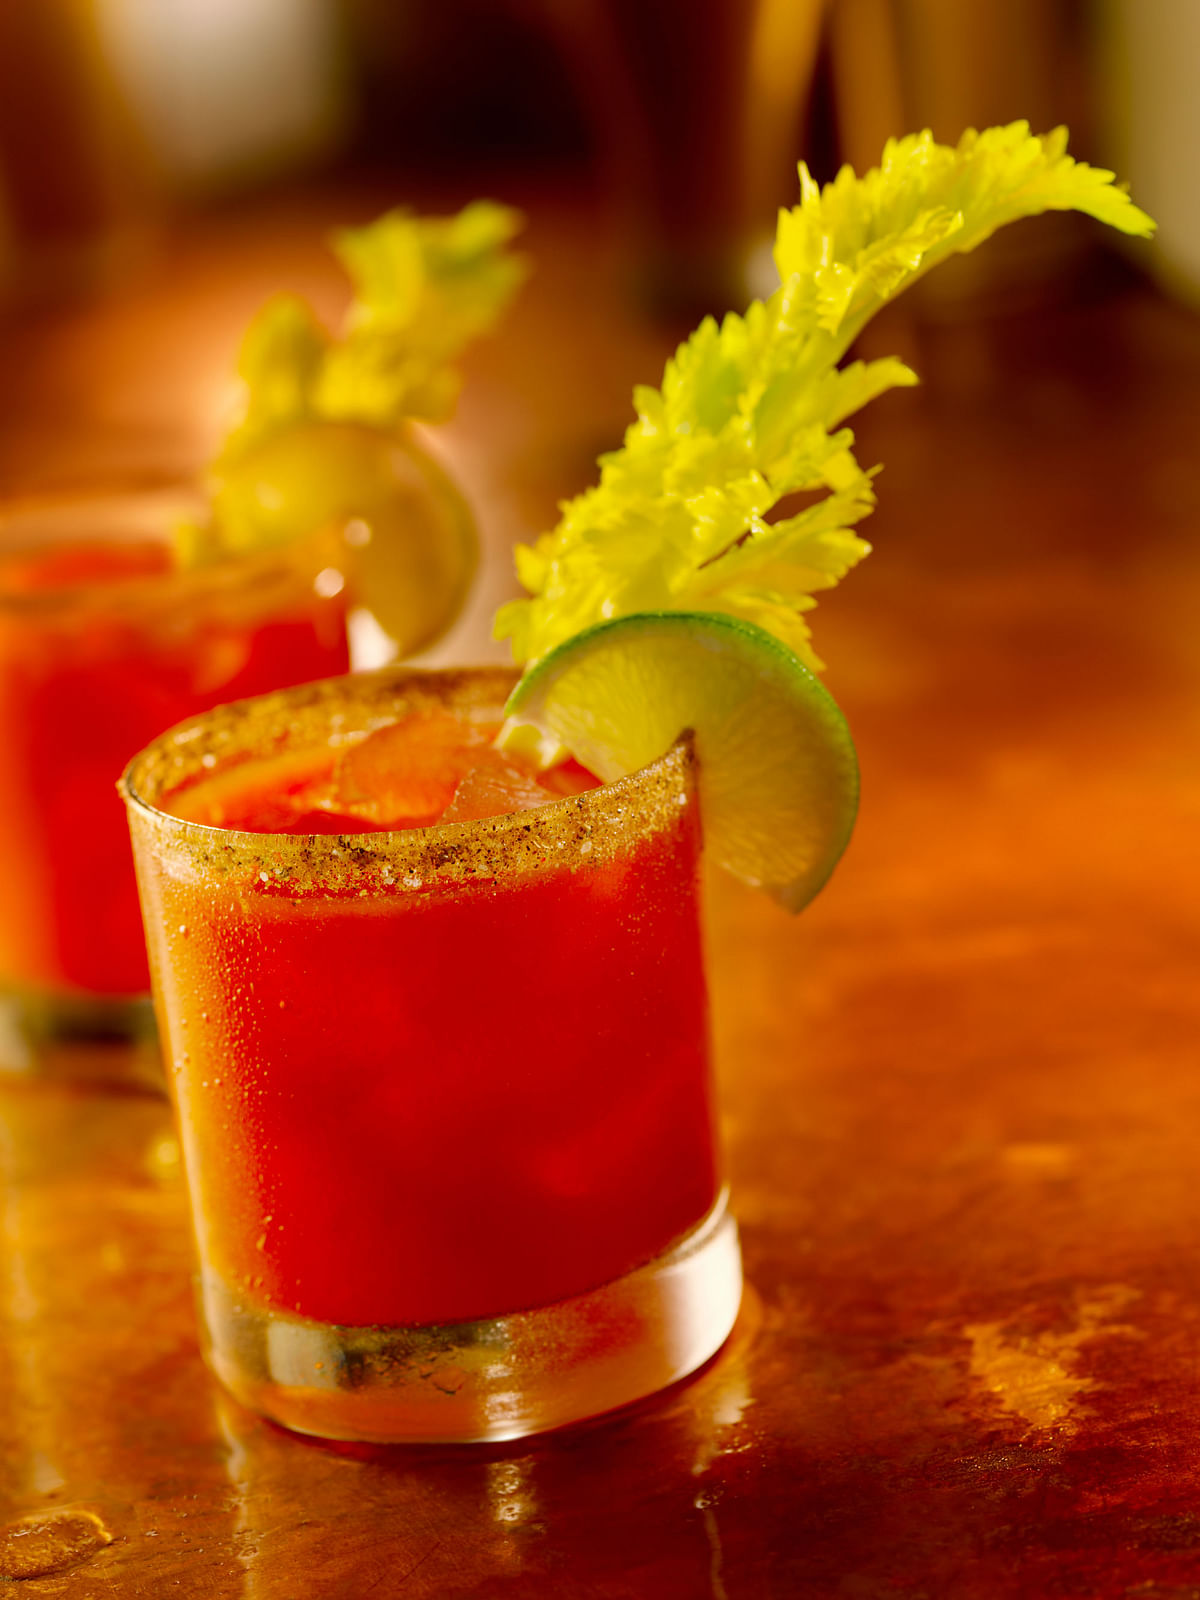 The Bloody Mary is an ideal brunch cocktail. (Photo: iStockphoto)